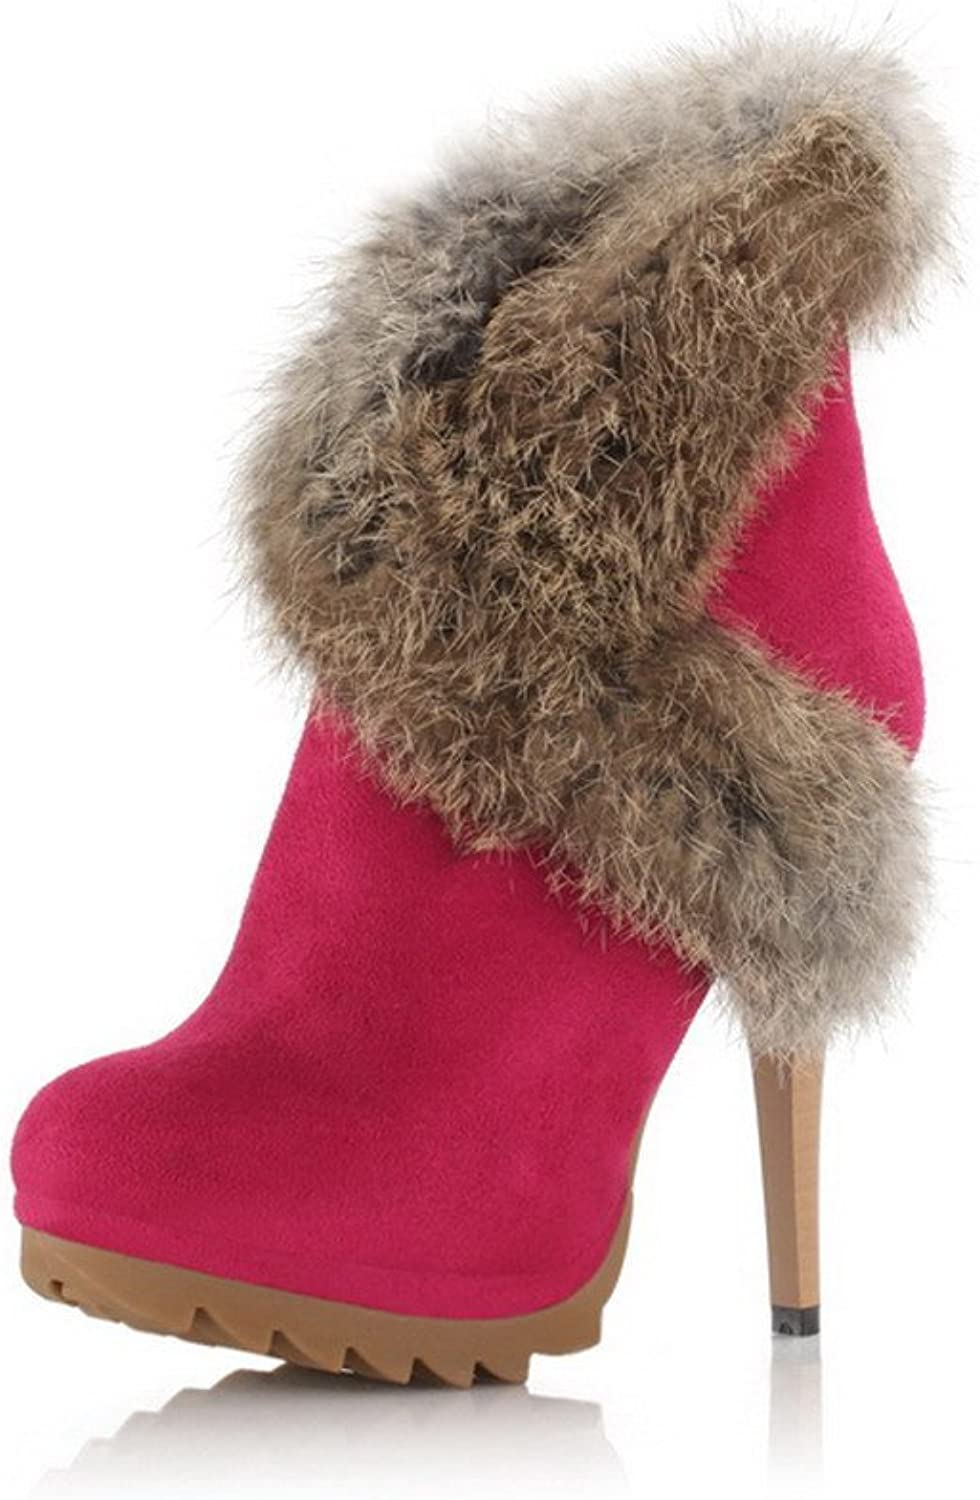 WeenFashion Womens Closed Round Toe High Heel Stiletto Frosted PU Short Plush Solid Boots with Zipper, pinkred, 7.5 B(M) US